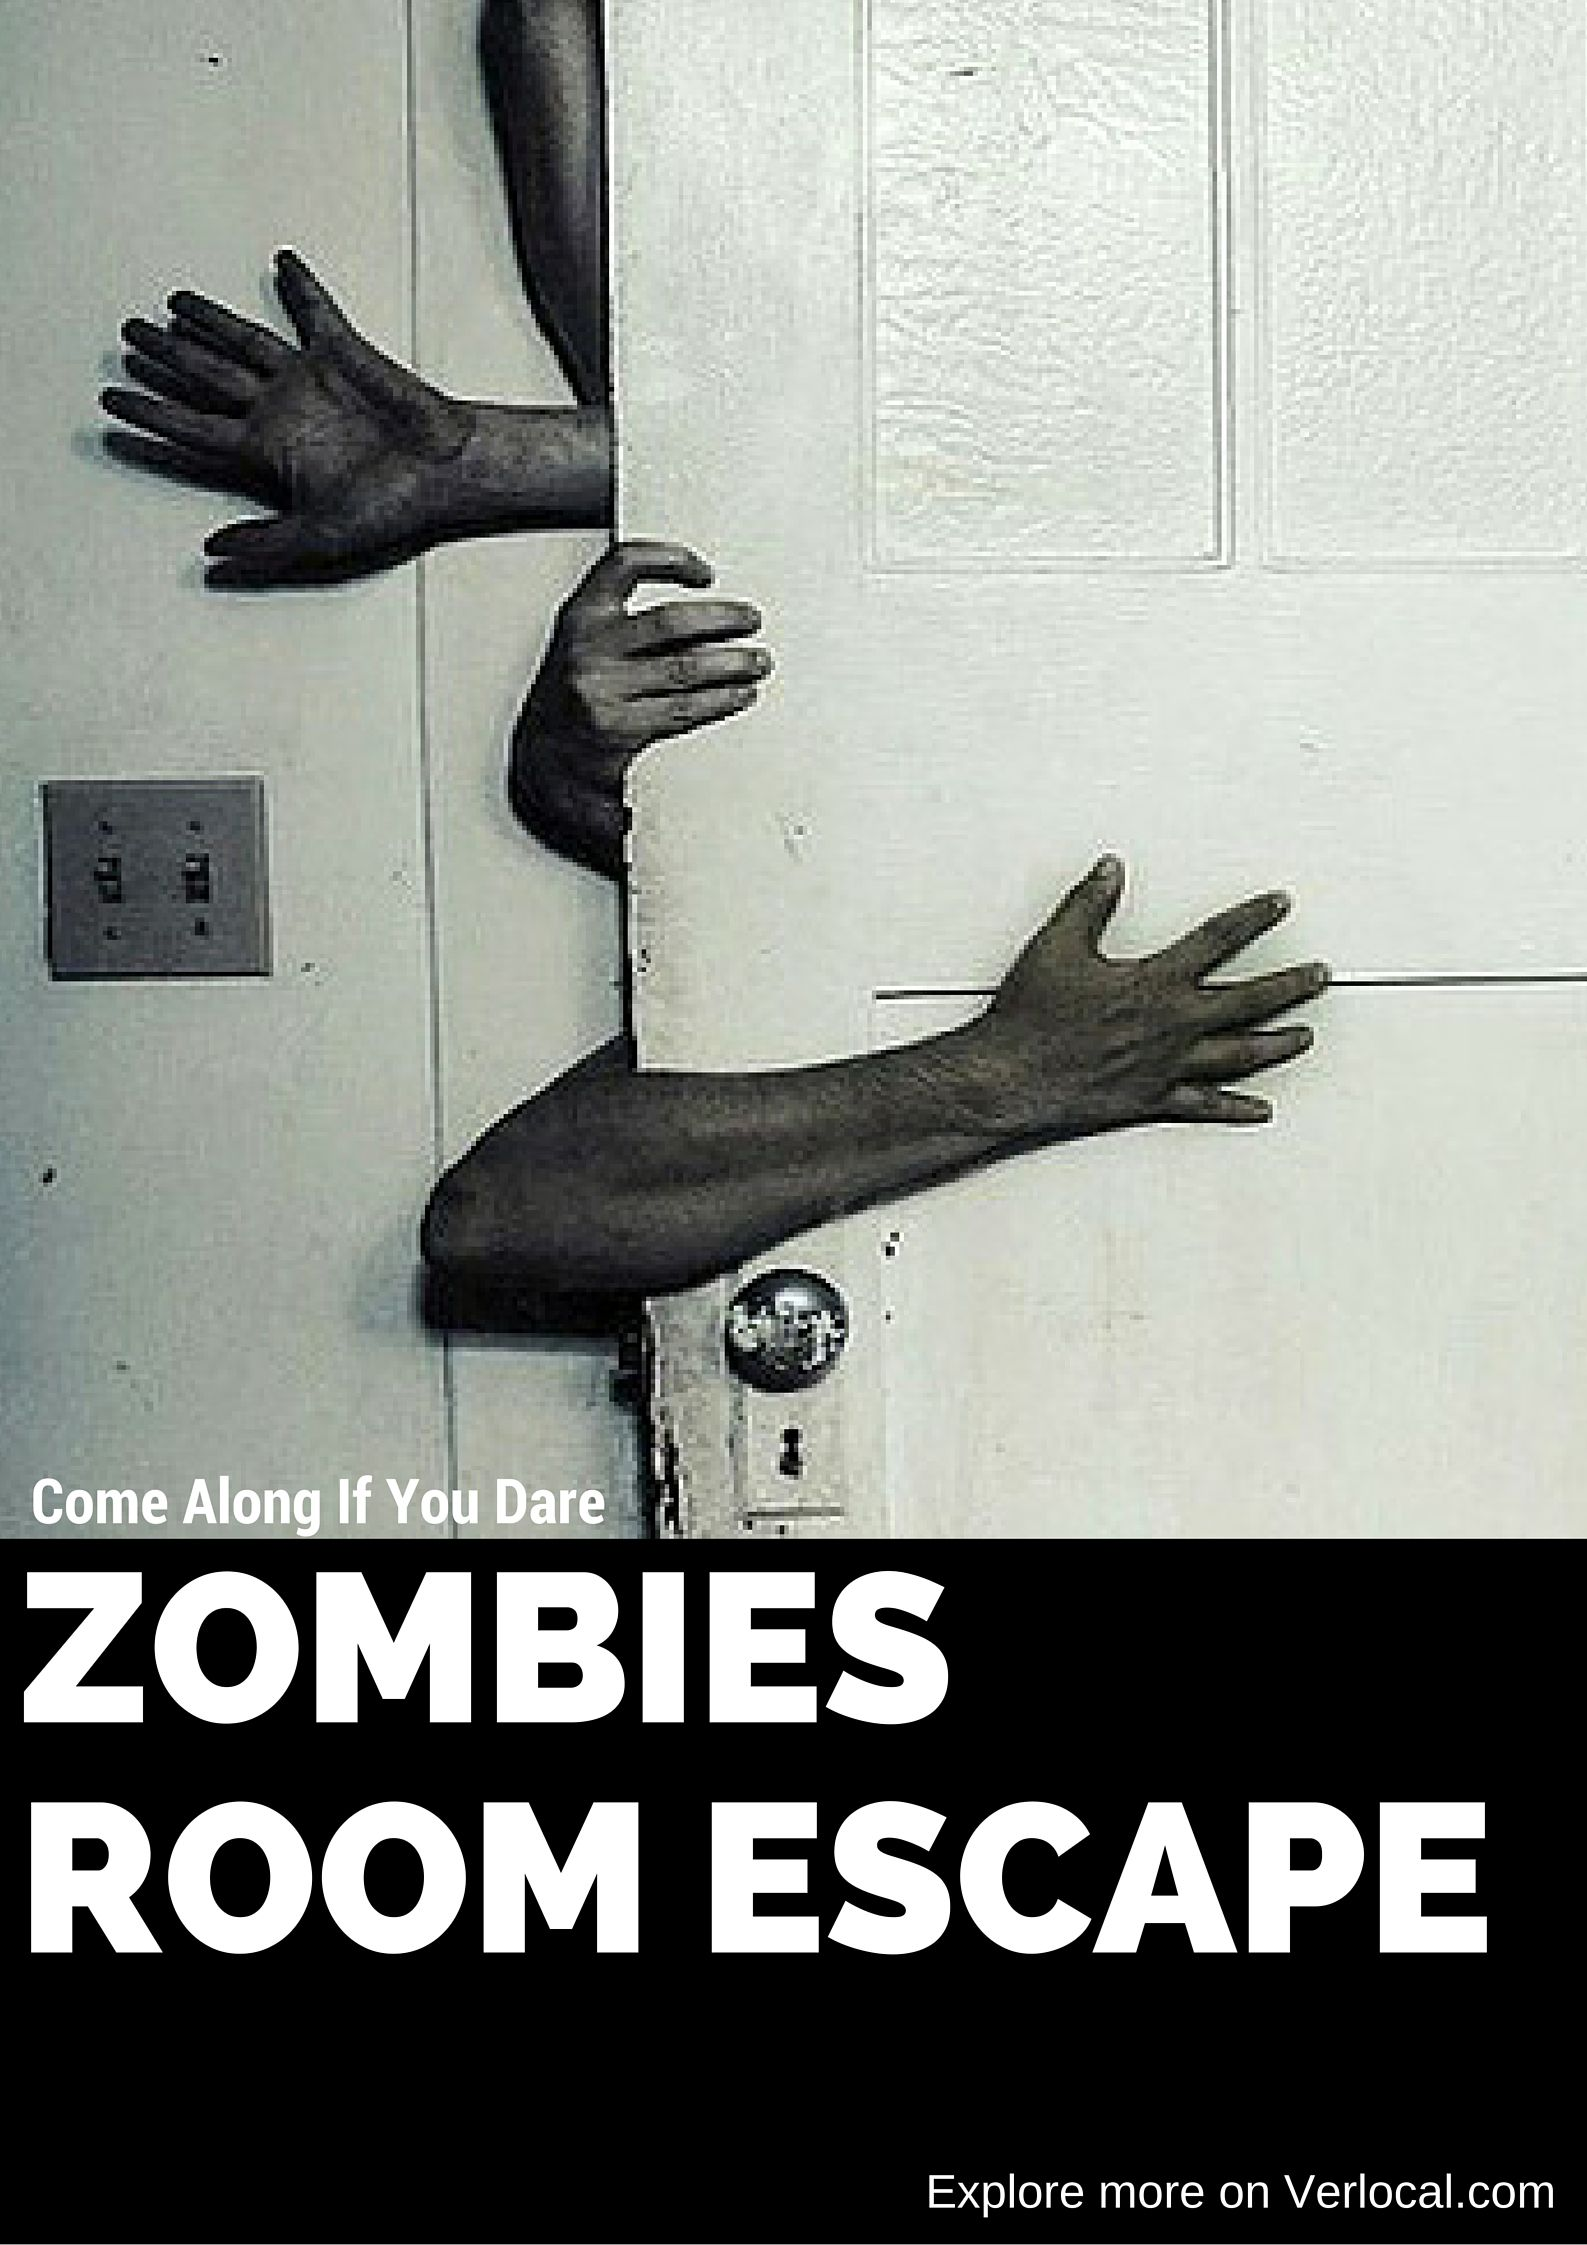 Prepare yourself for an hour of insane fun, team building, and laughter - as you are about to be trapped in a room with a zombie!